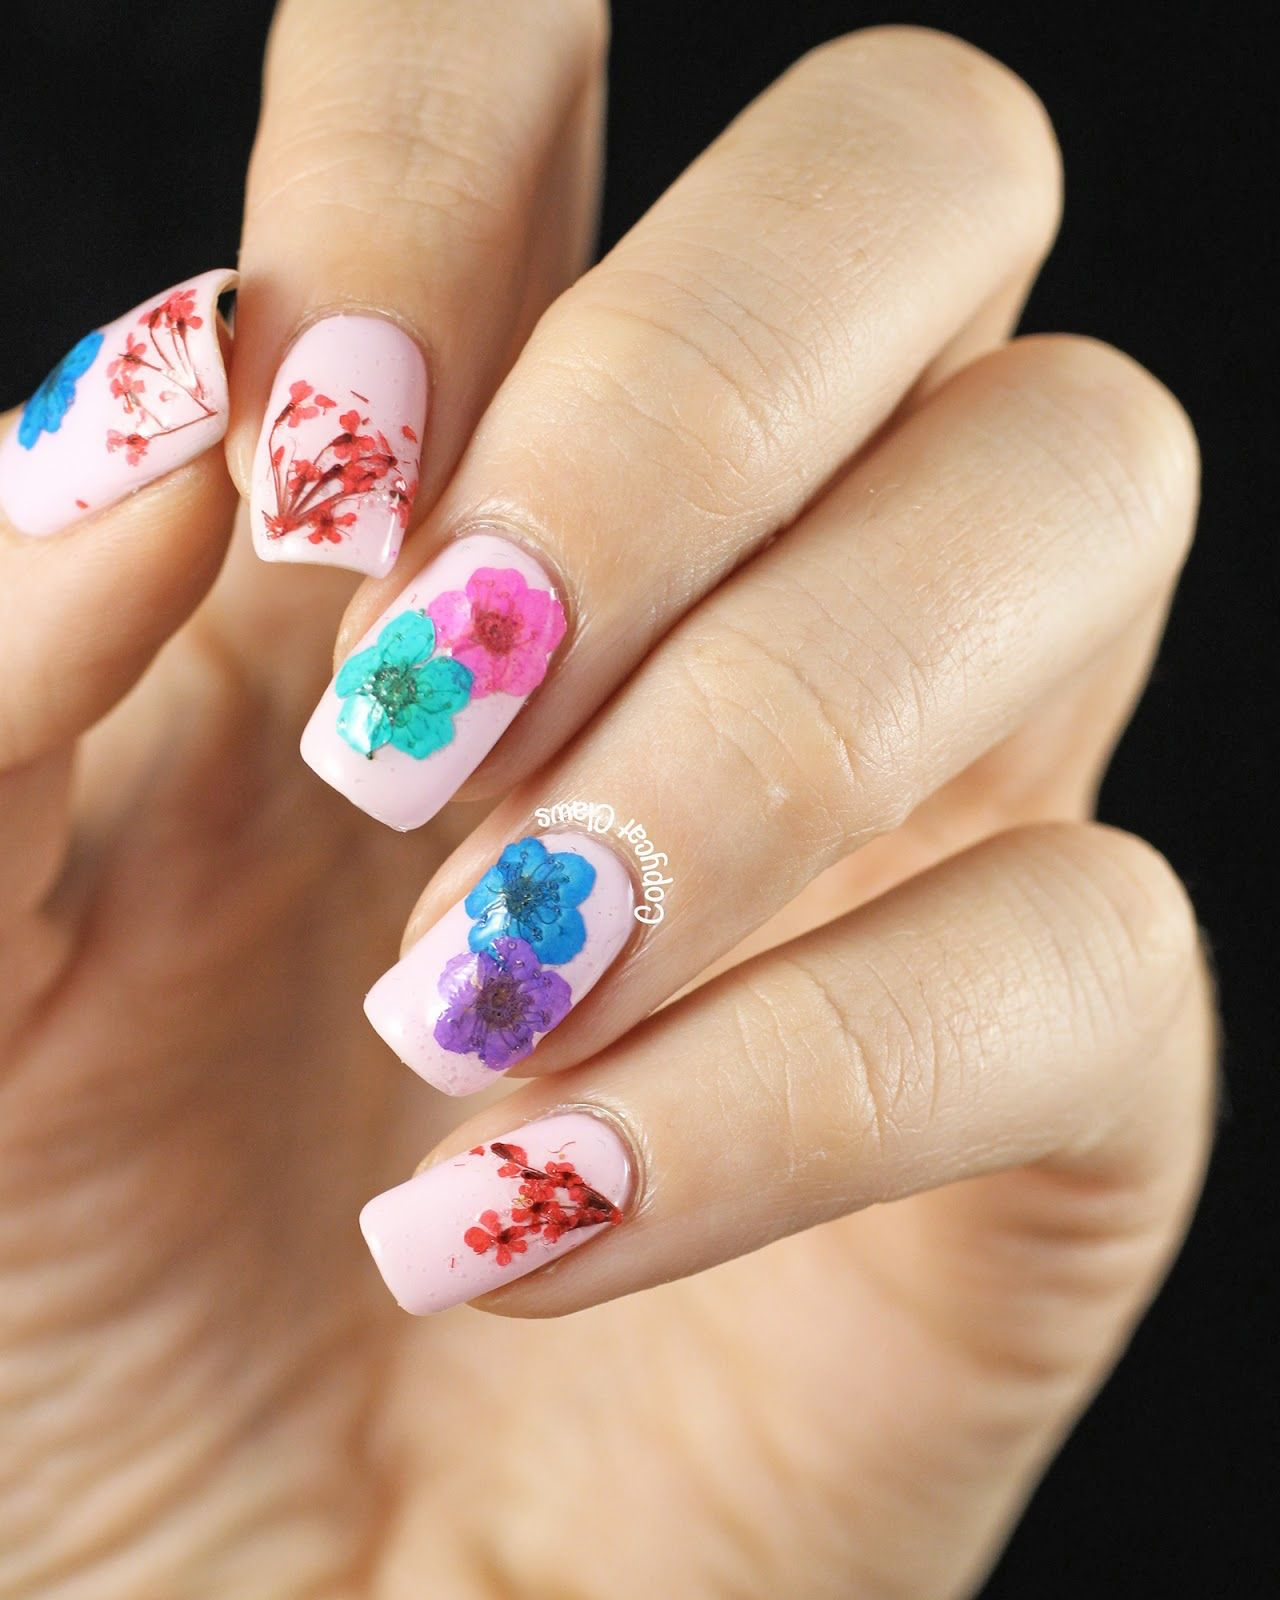 Unas Decoradas Con Flores 30 Ideas Fantasticas S Nail Designs